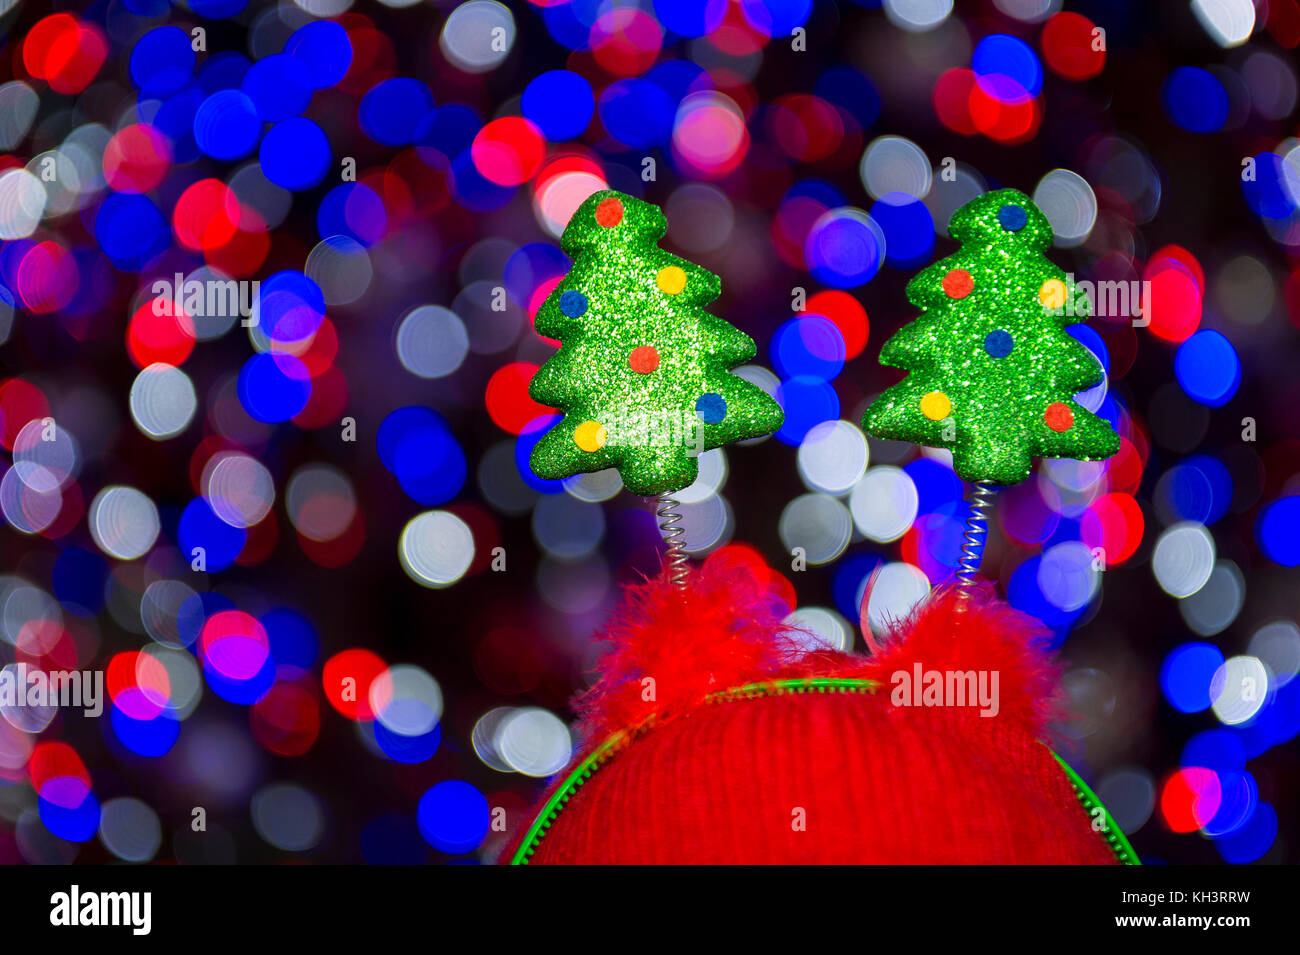 decorative springy christmas trees on novelty headwear standing against colorful bokeh light bubbles